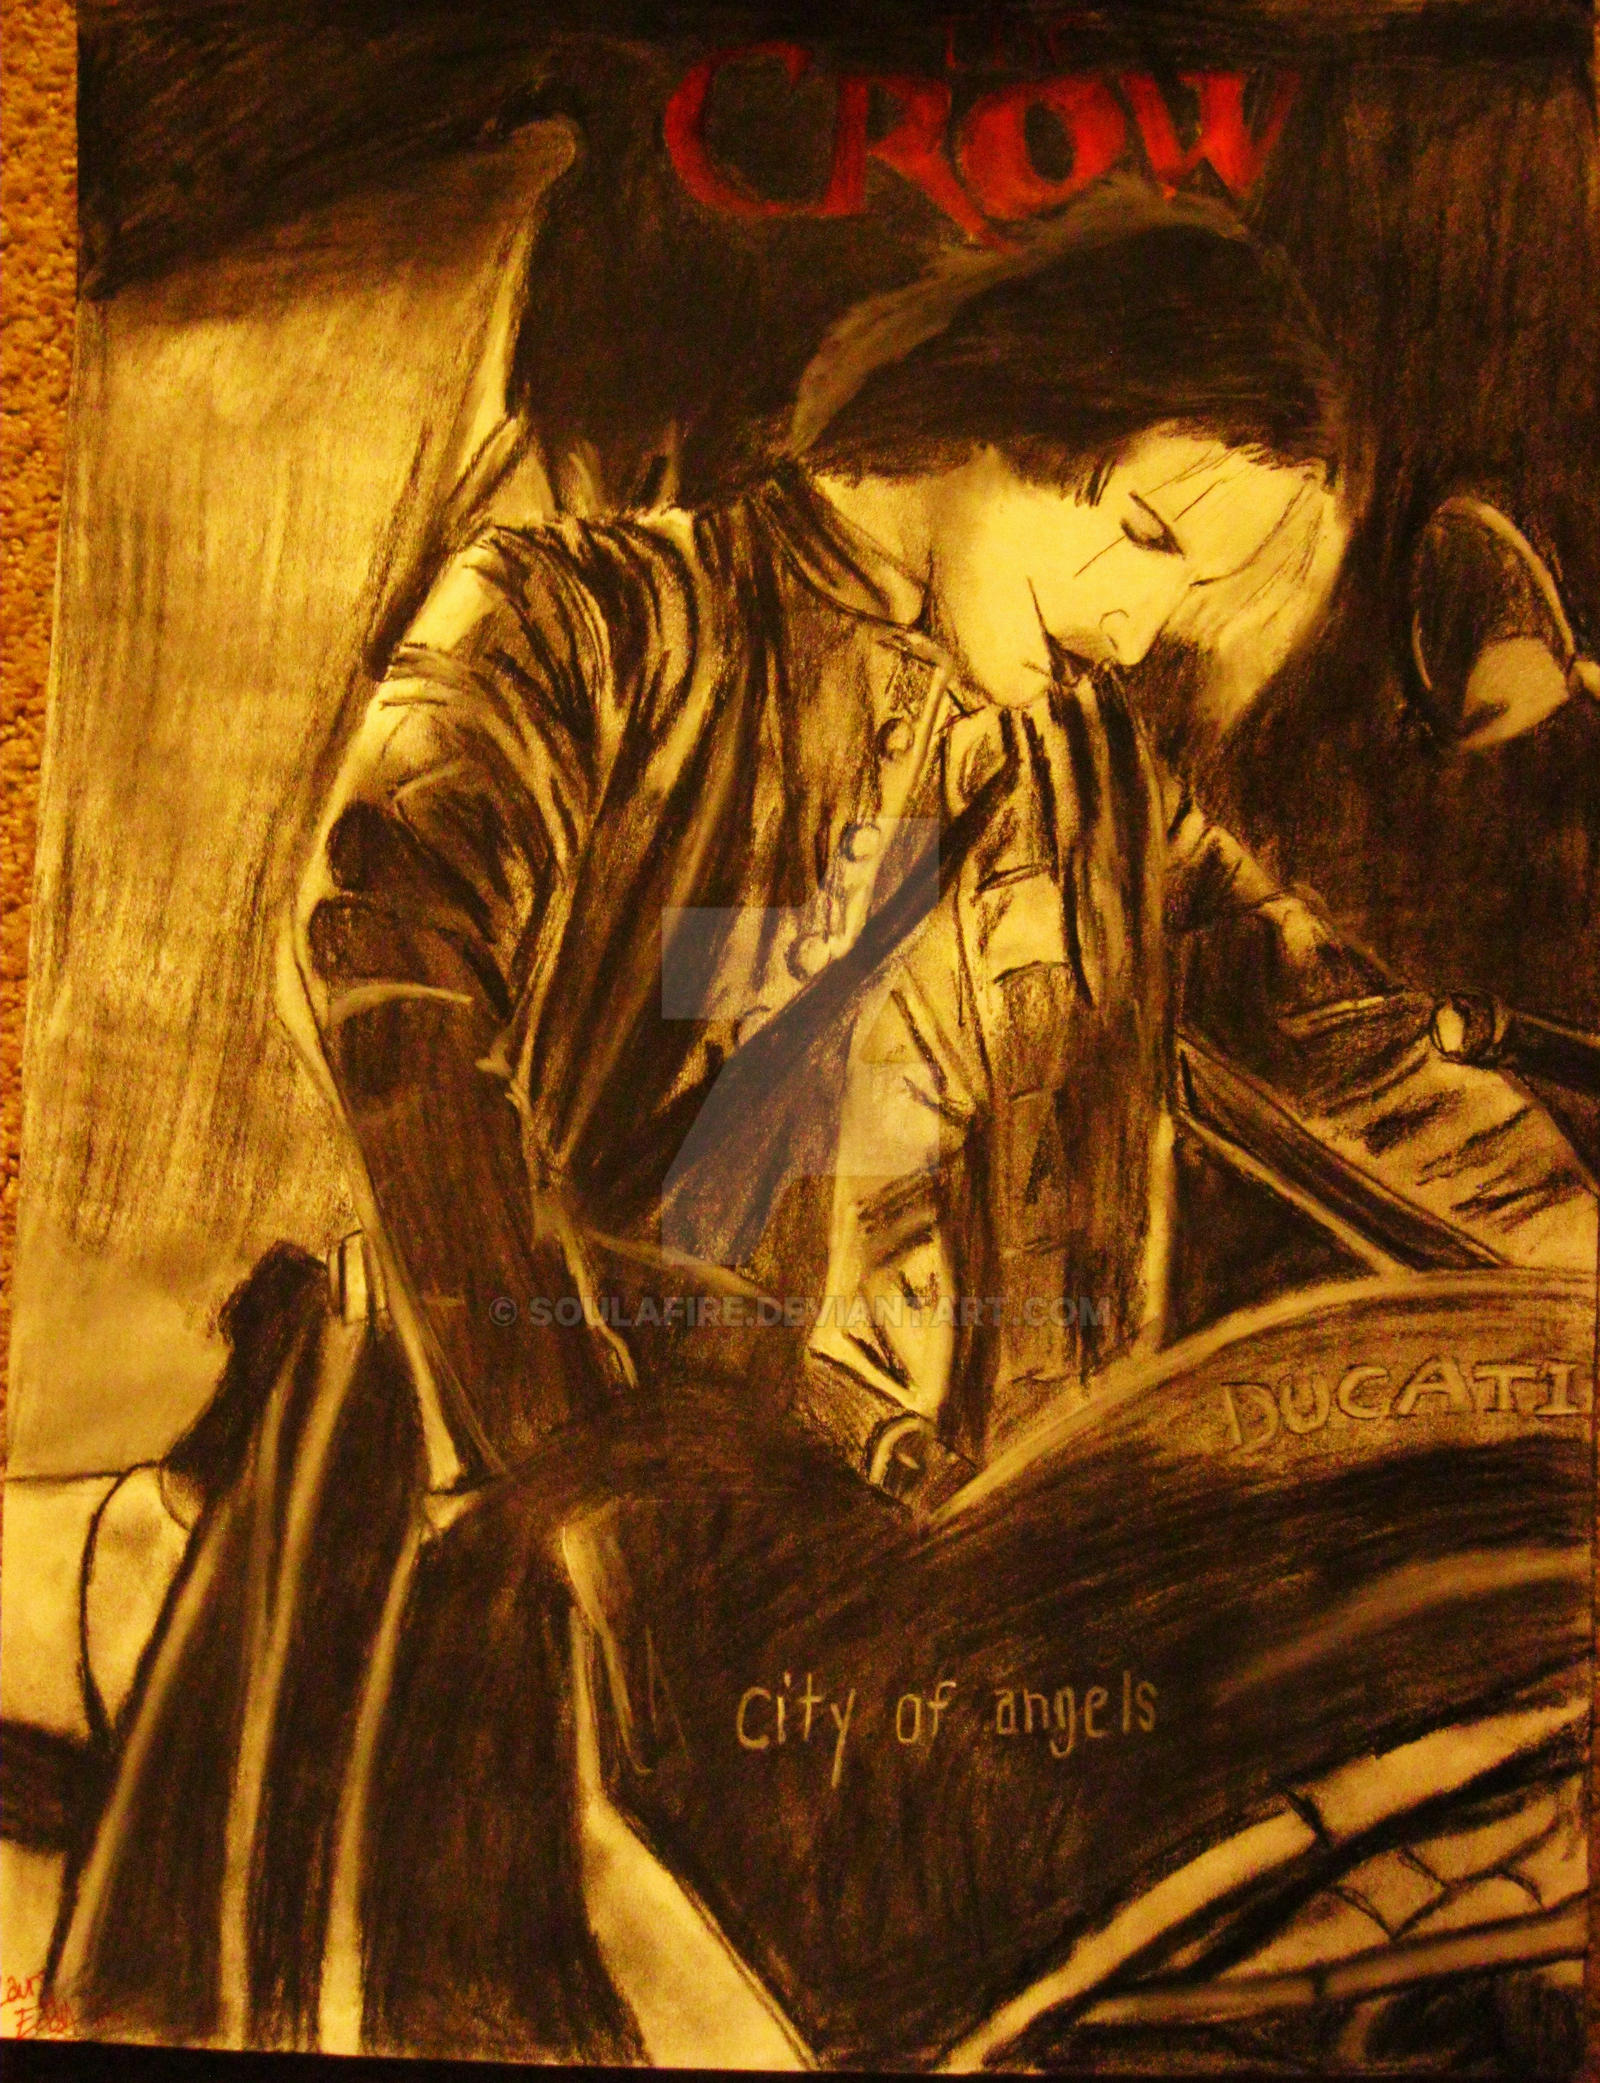 The crow city of angels logo - photo#5